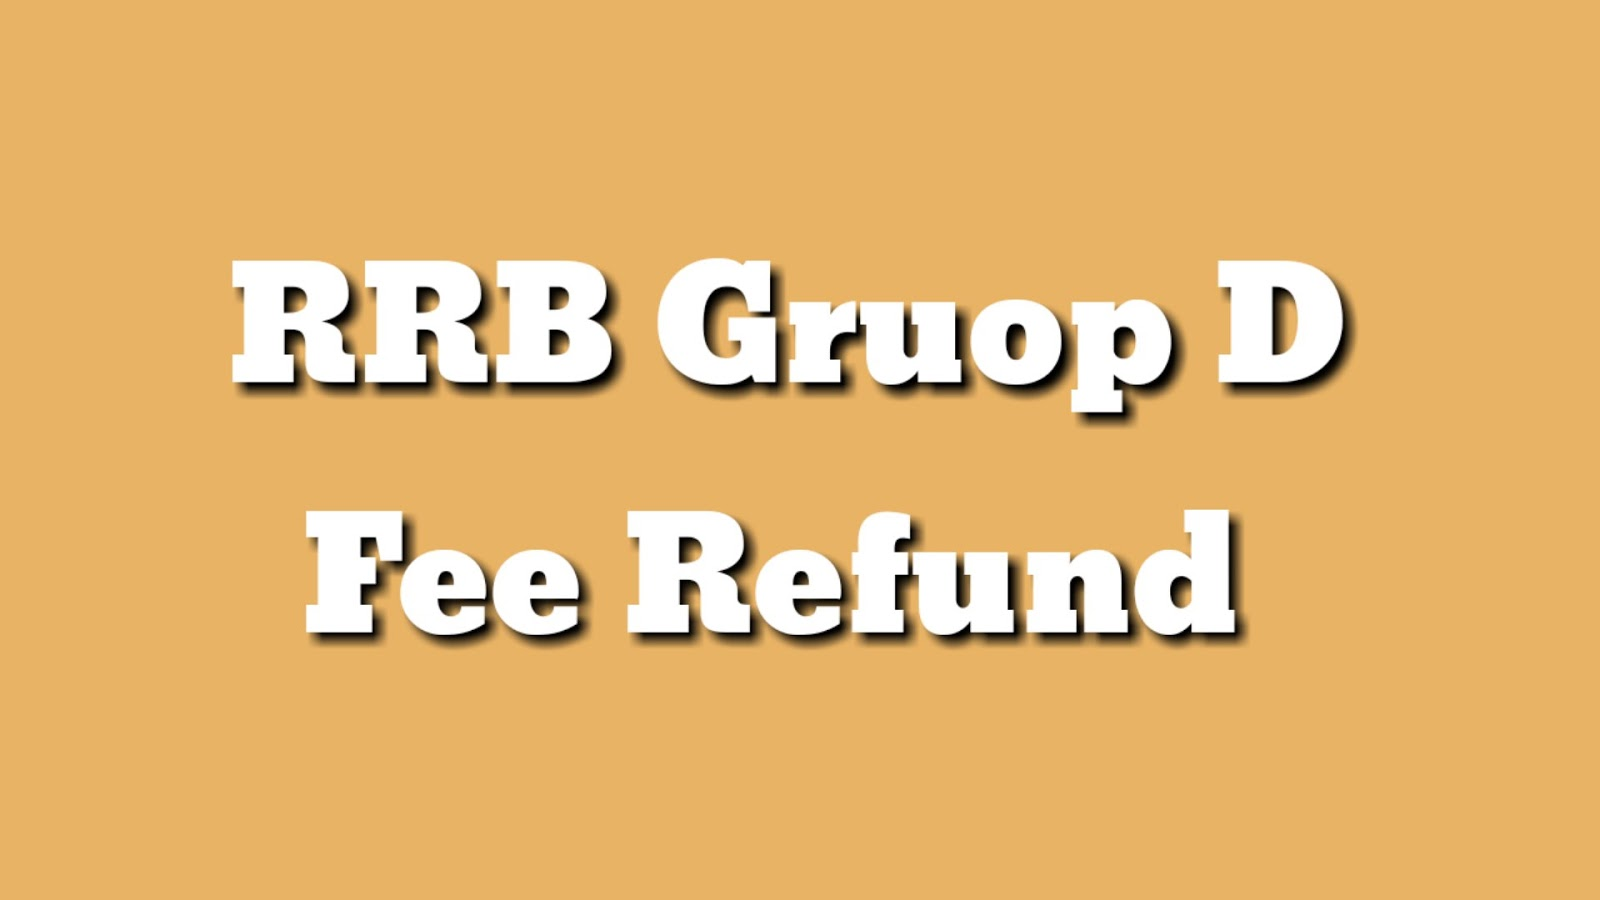 Breaking news: RRB Group D has announce Exam Fee Refund on 22/03/2019 at 6:00 PM